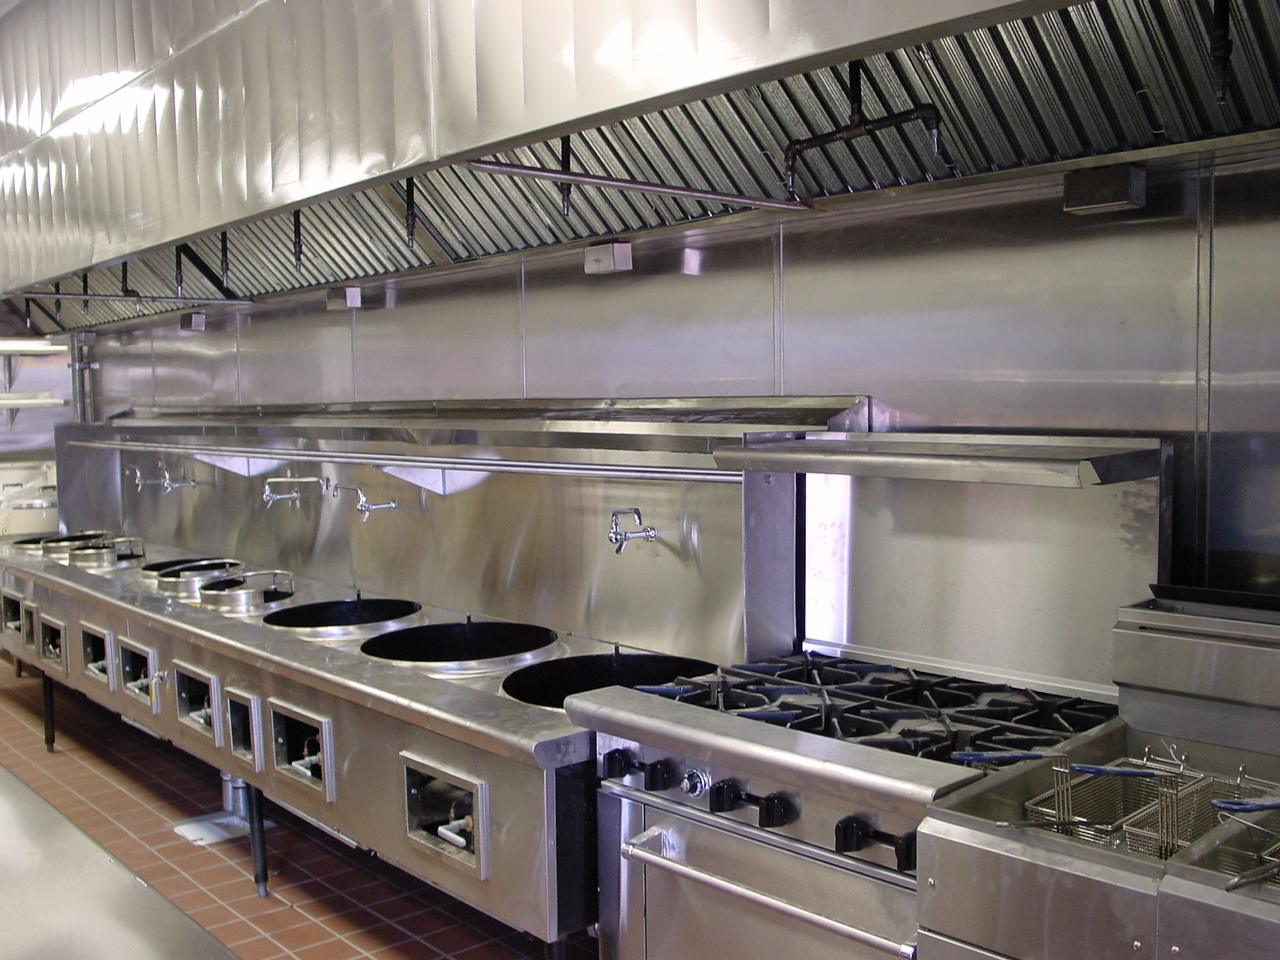 Restaurant cleaning phoenix hood services colorado hvac salt lake city - Commercial kitchen exhaust system design ...